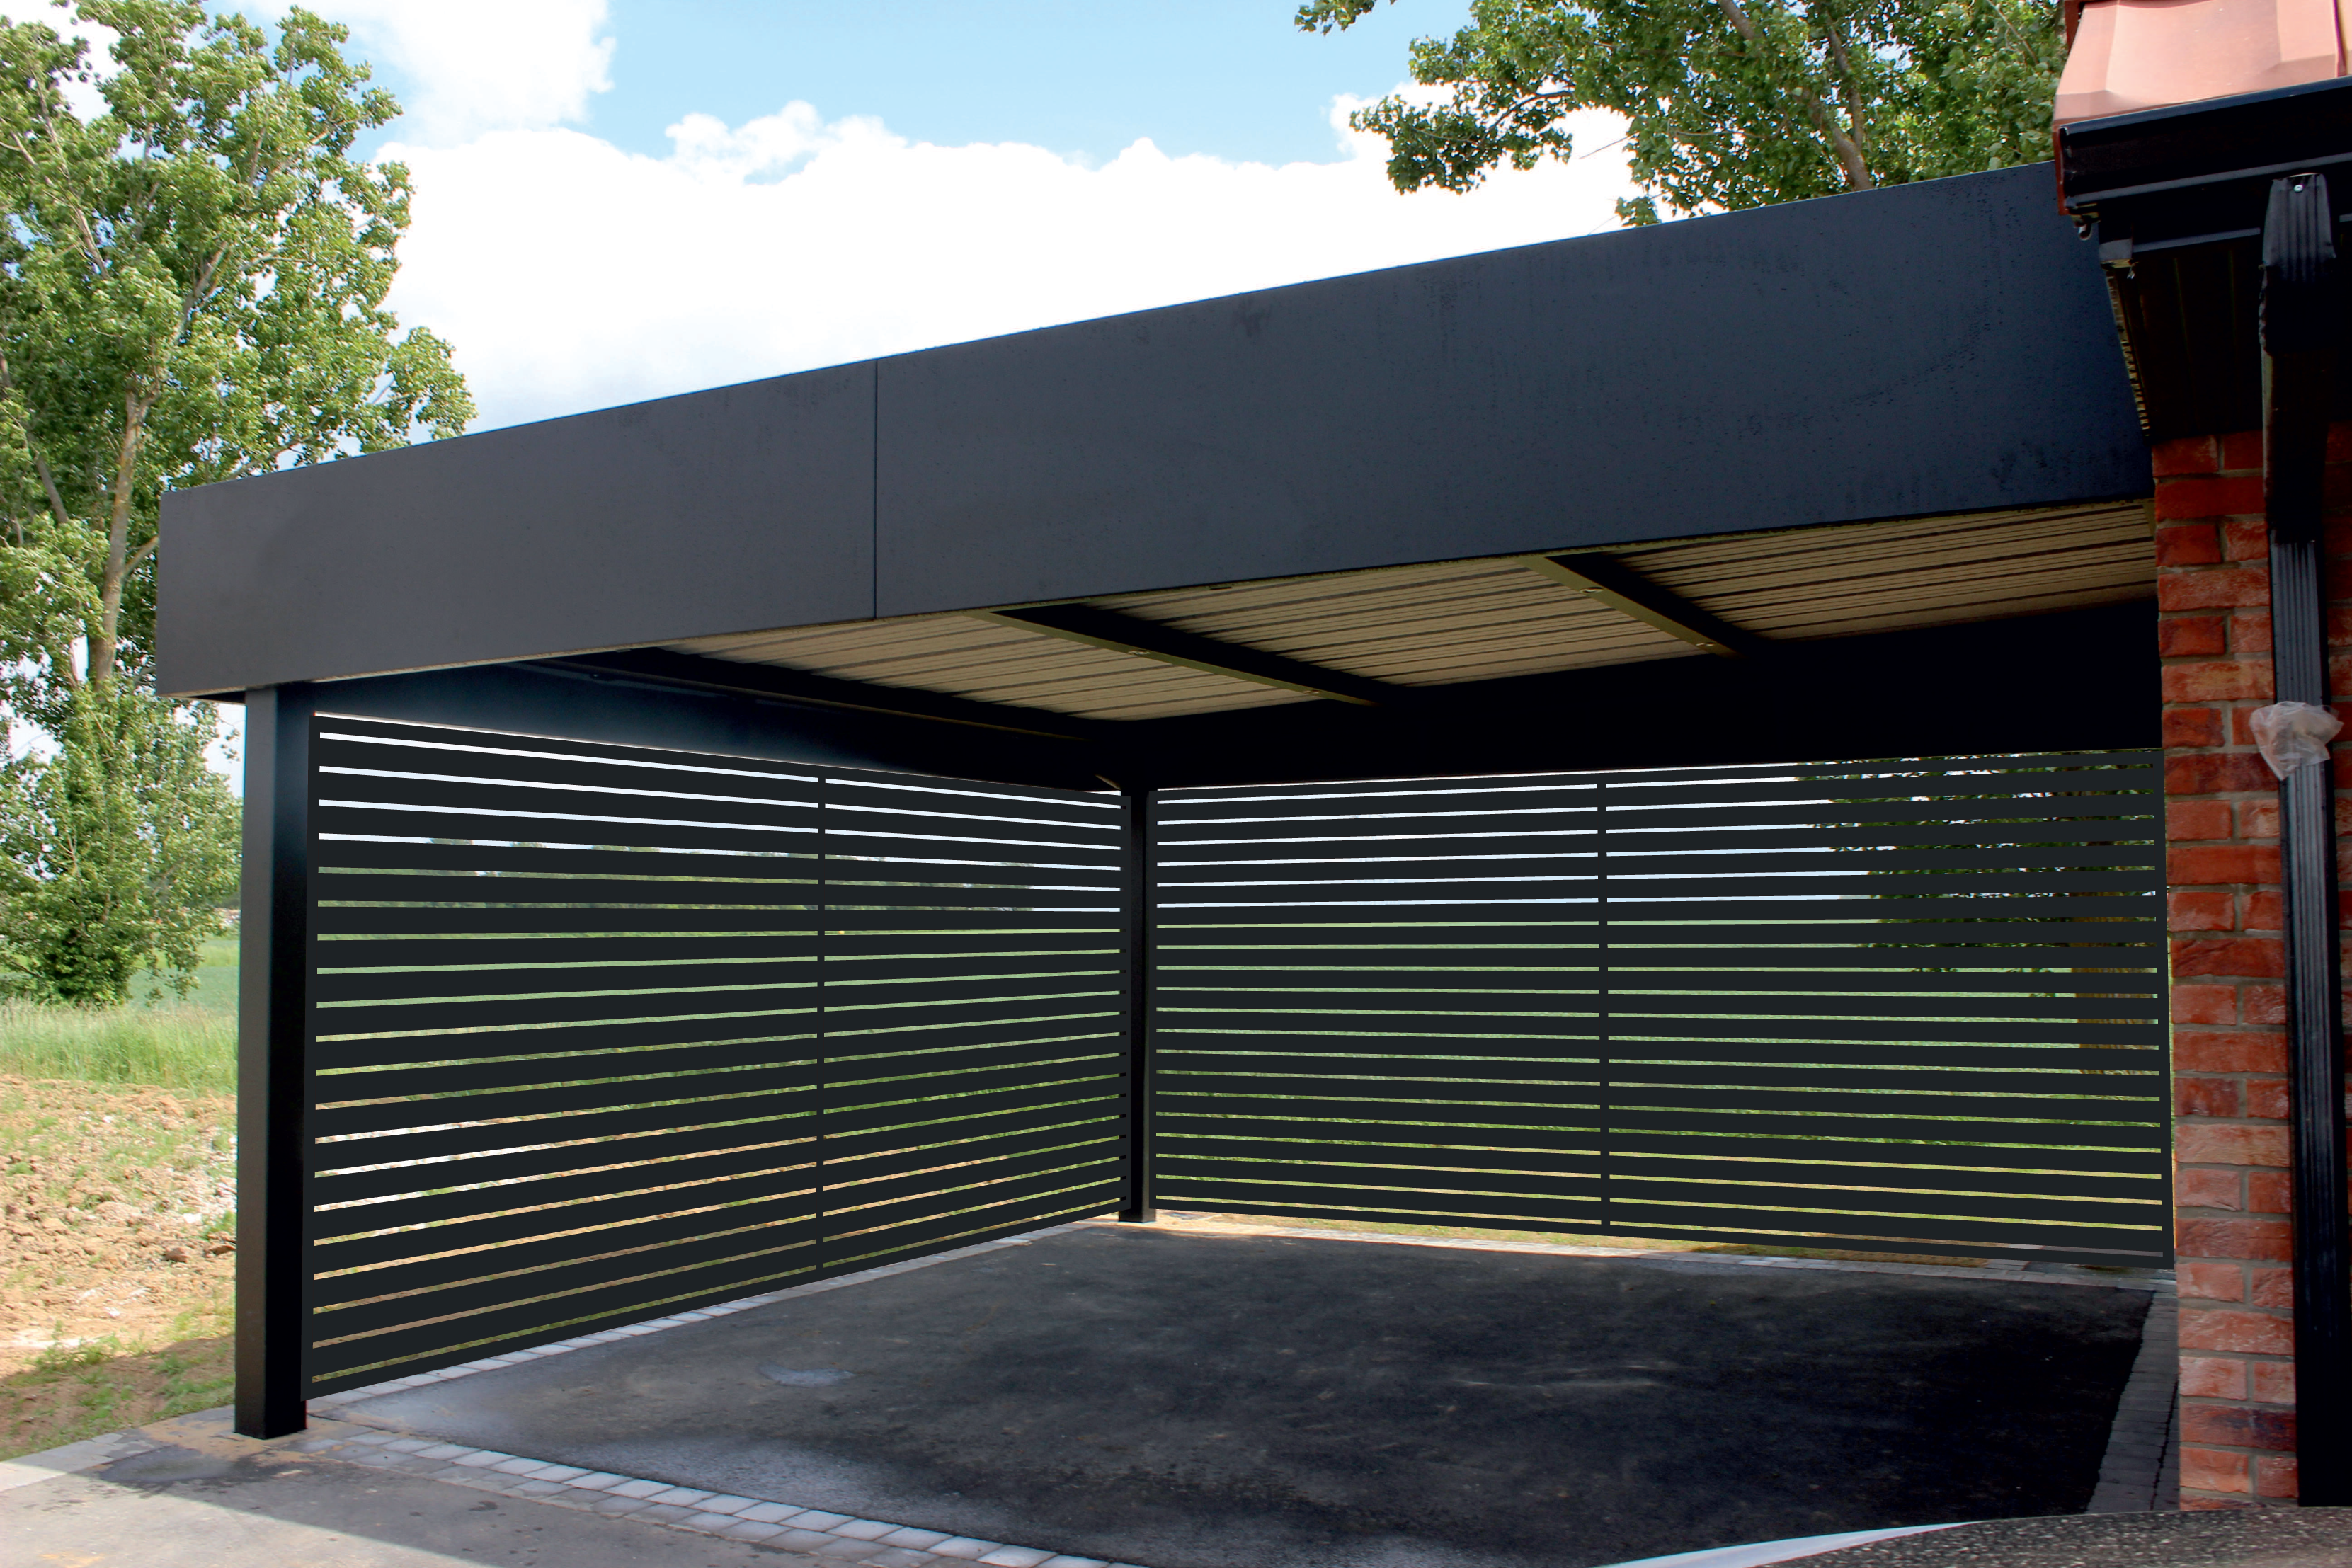 Carport Aluminium Tori Portails Carport Designs Carport Garage Modern Carport